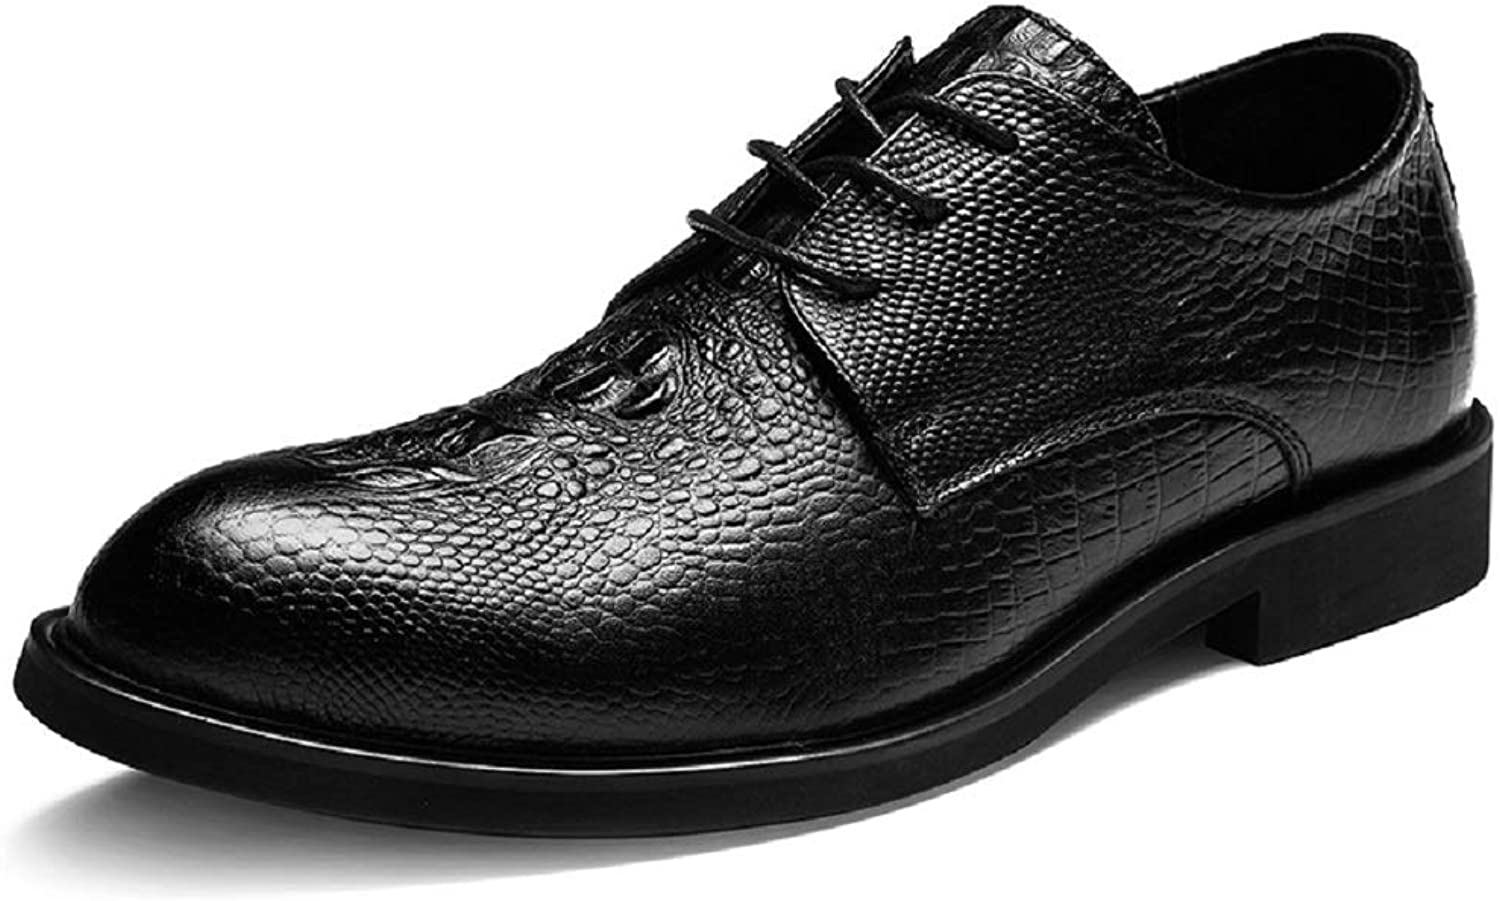 Men Soft Casual City shoes Lace-Up Toe Round Toe